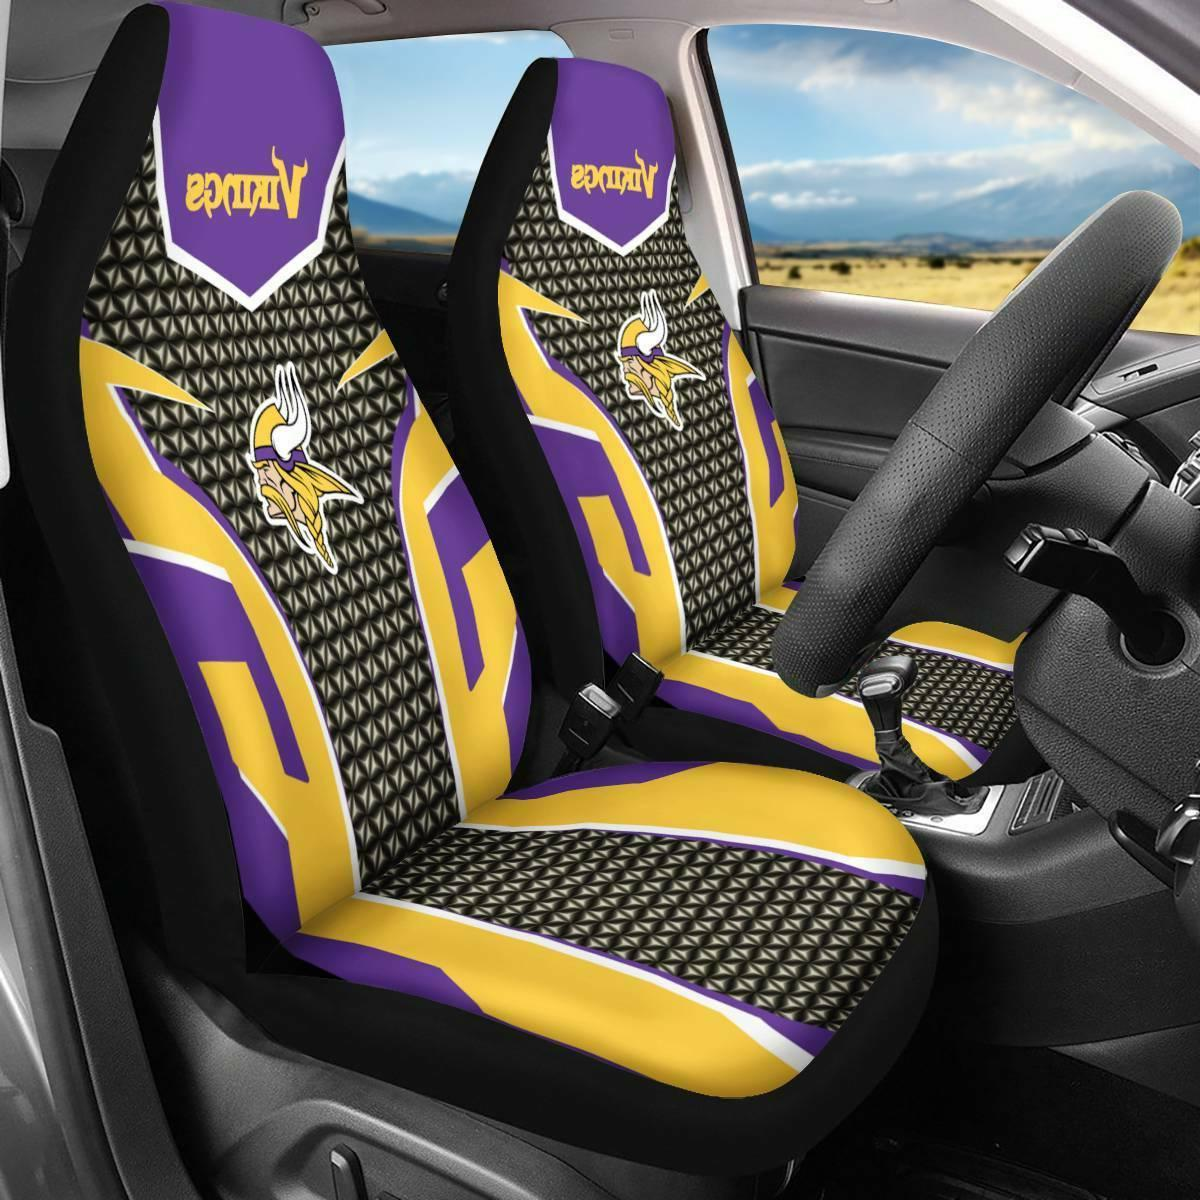 Set of Two Minnesota Vikings Car Seat Covers Universal Fit T